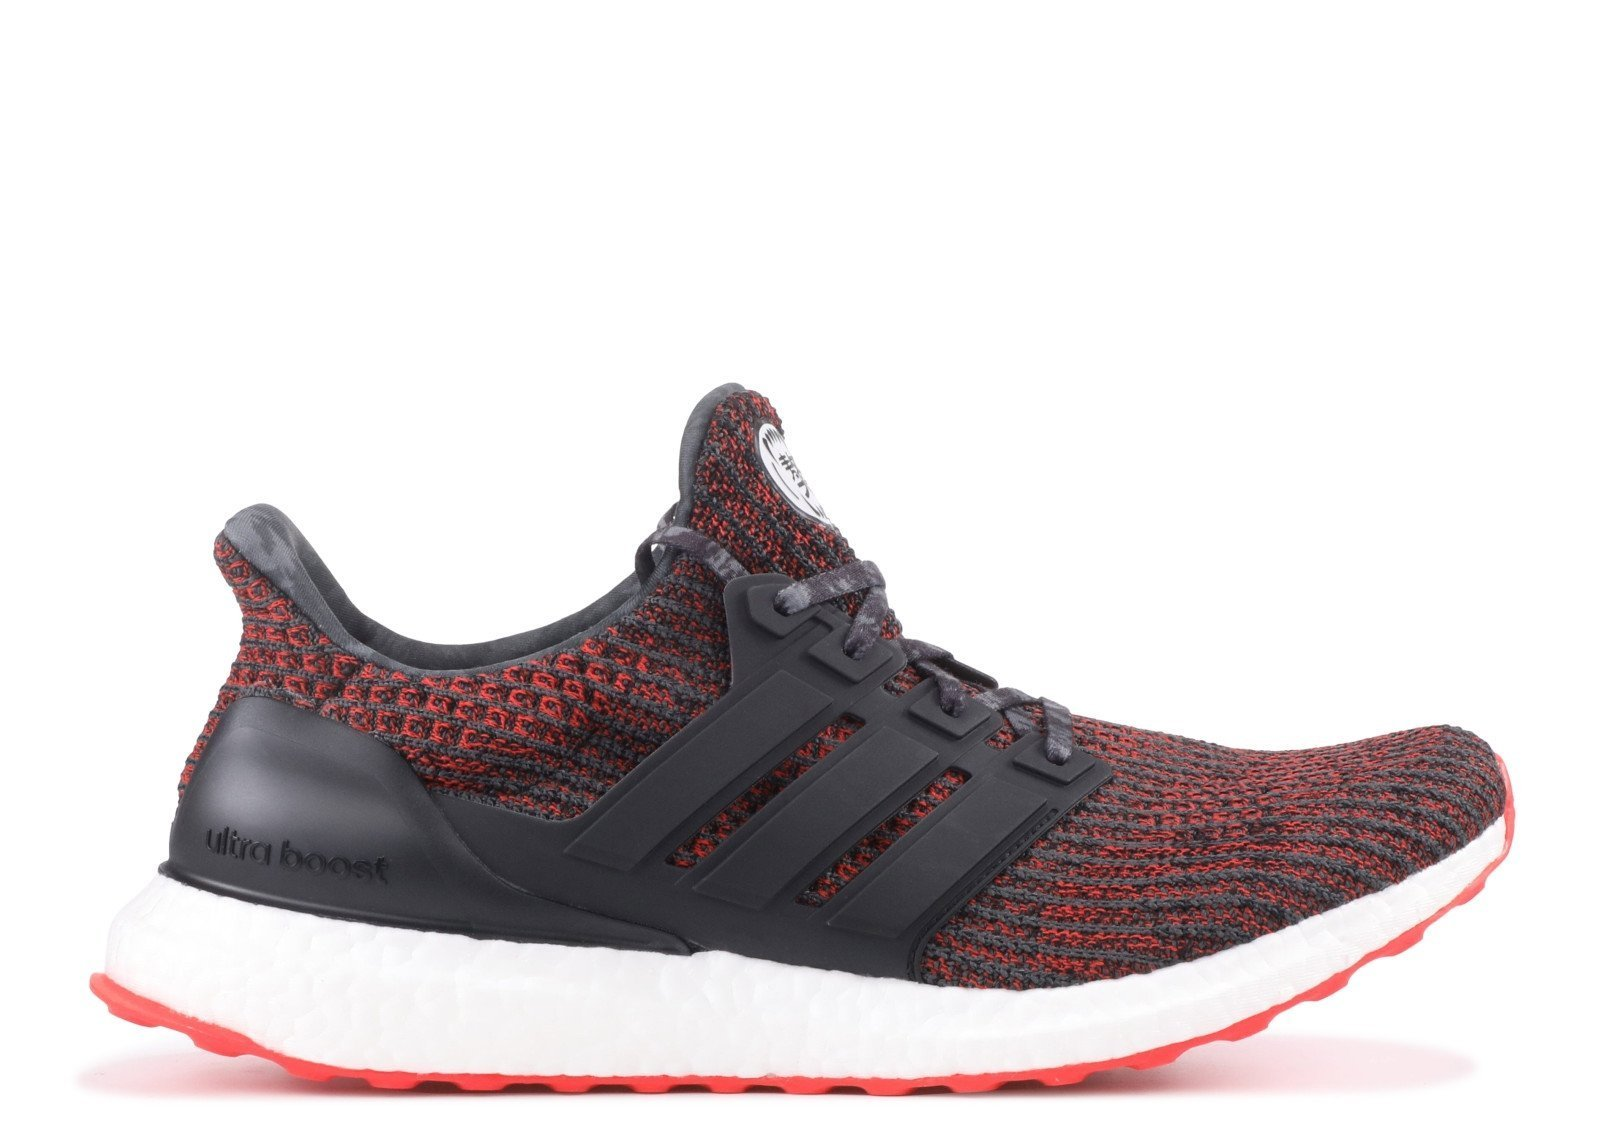 5fd4eb2be9c86 Galleon - Adidas Men s Ultraboost